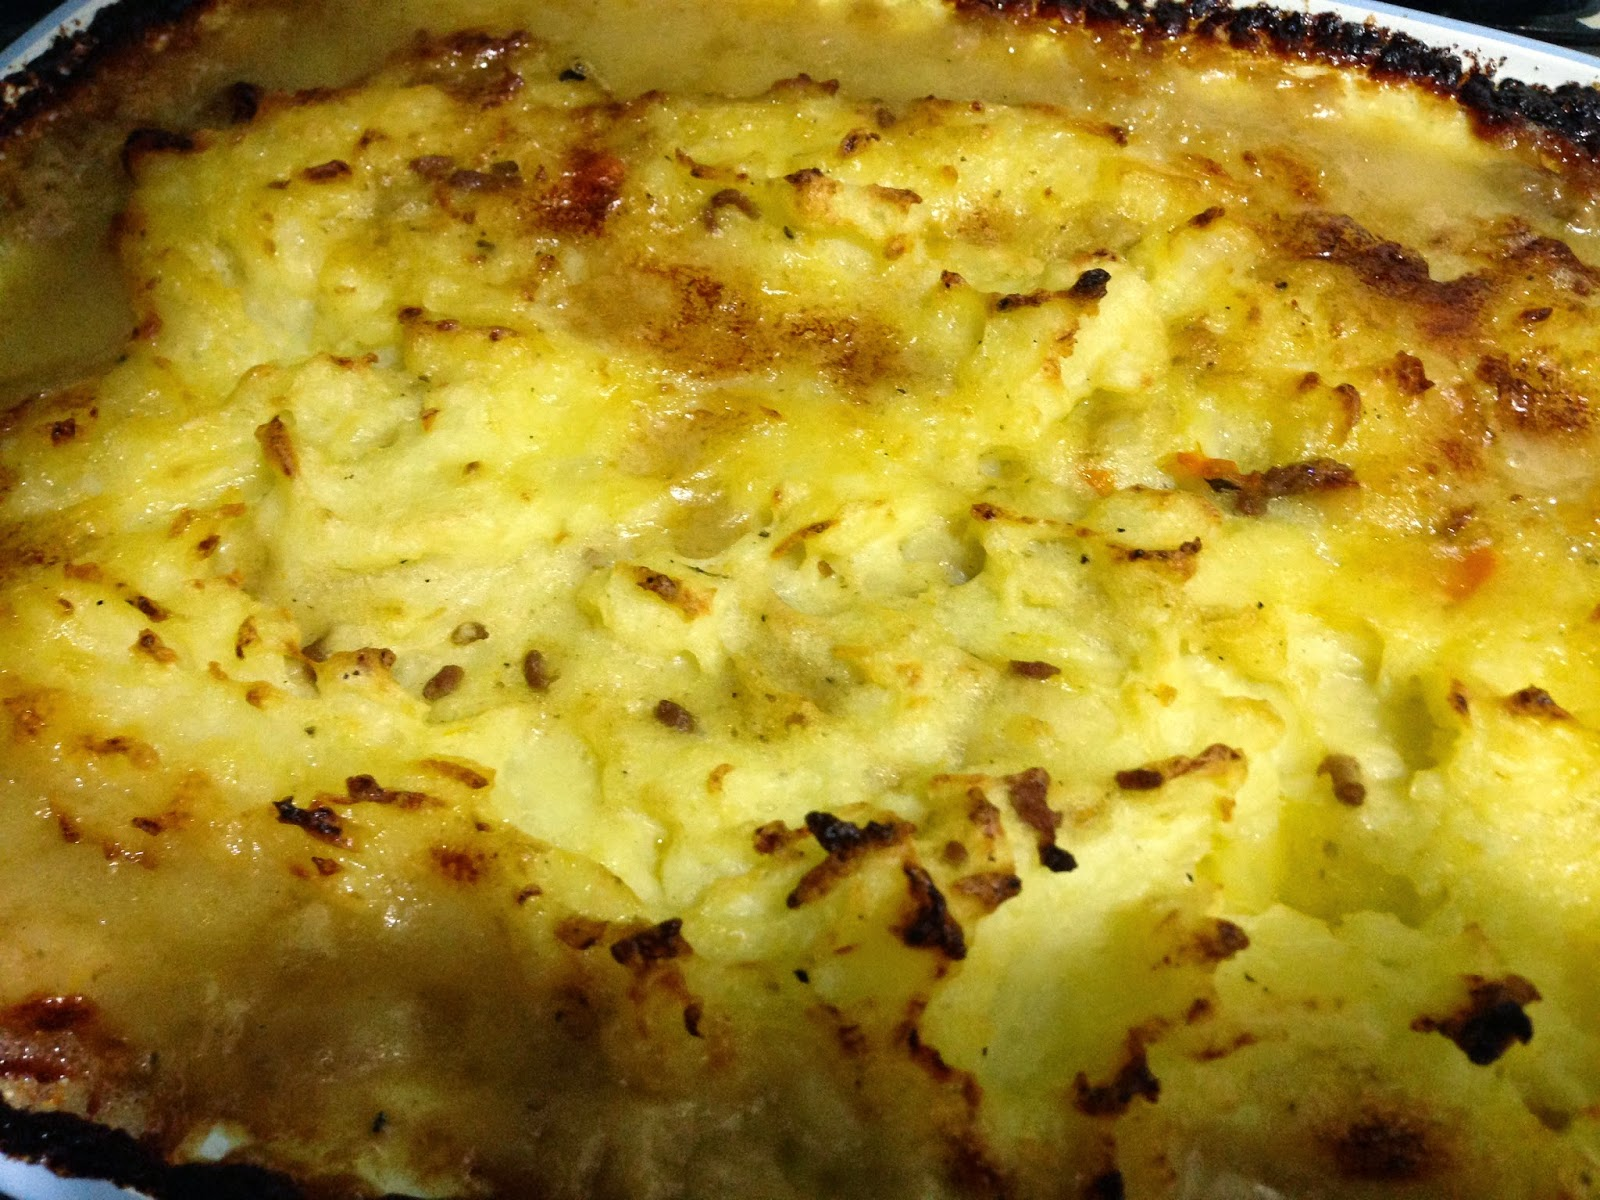 Jamie Oliver's Shepherd's Pie vs Milkman's Pie from Jamie's Great Britain.